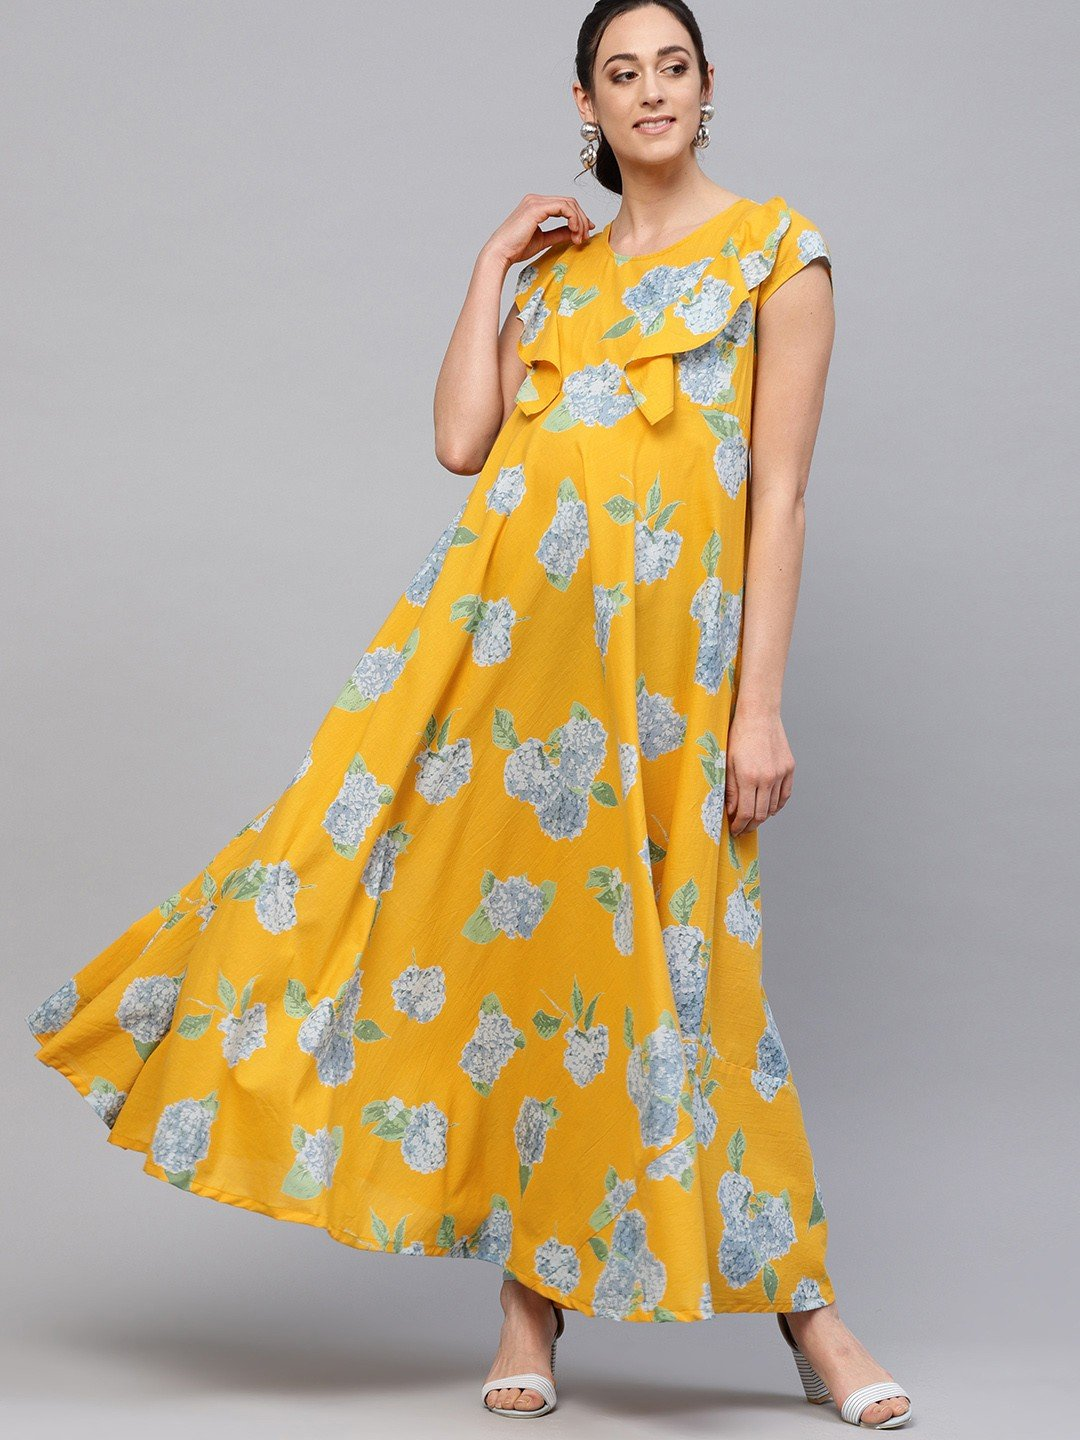 Adaa - Yellow Floral Printed Flared Maternity Maxi